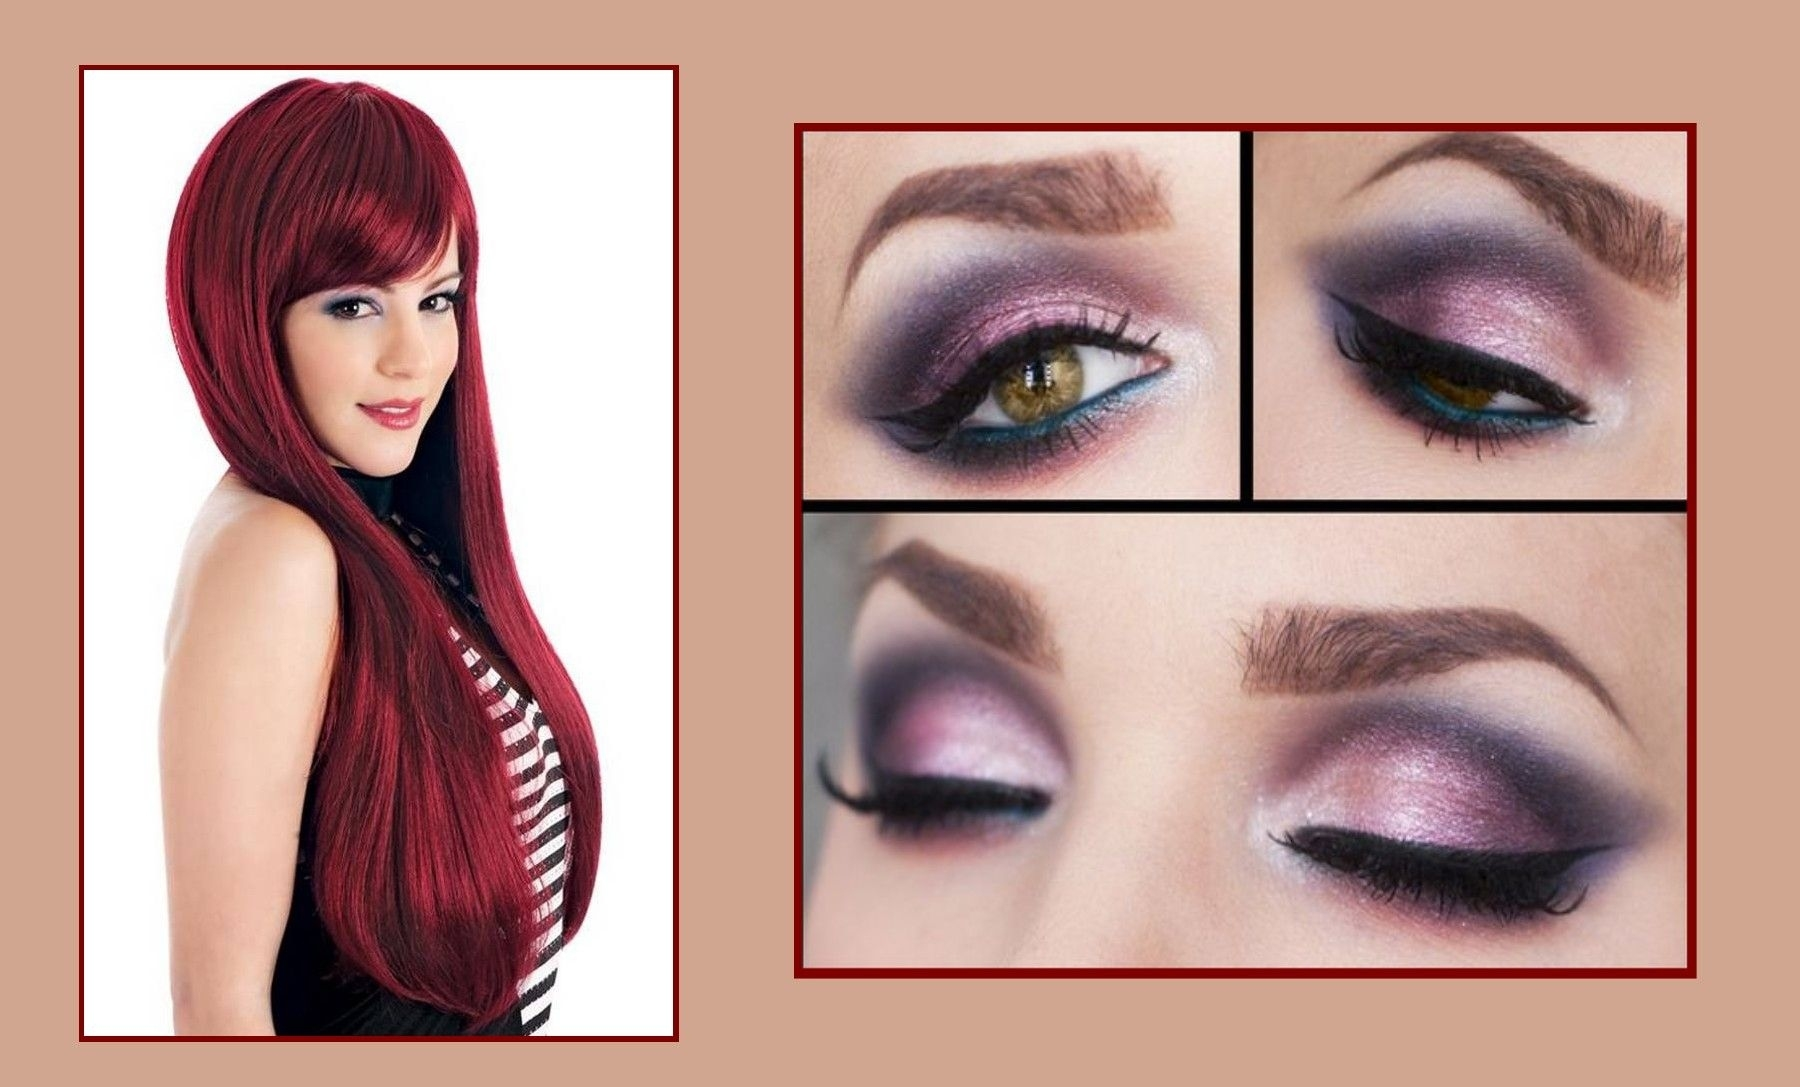 Makeup For Hazel Green Eyes   Makeup For Green Eyes And Red Hair inside Best Makeup For Hazel Eyes And Red Hair